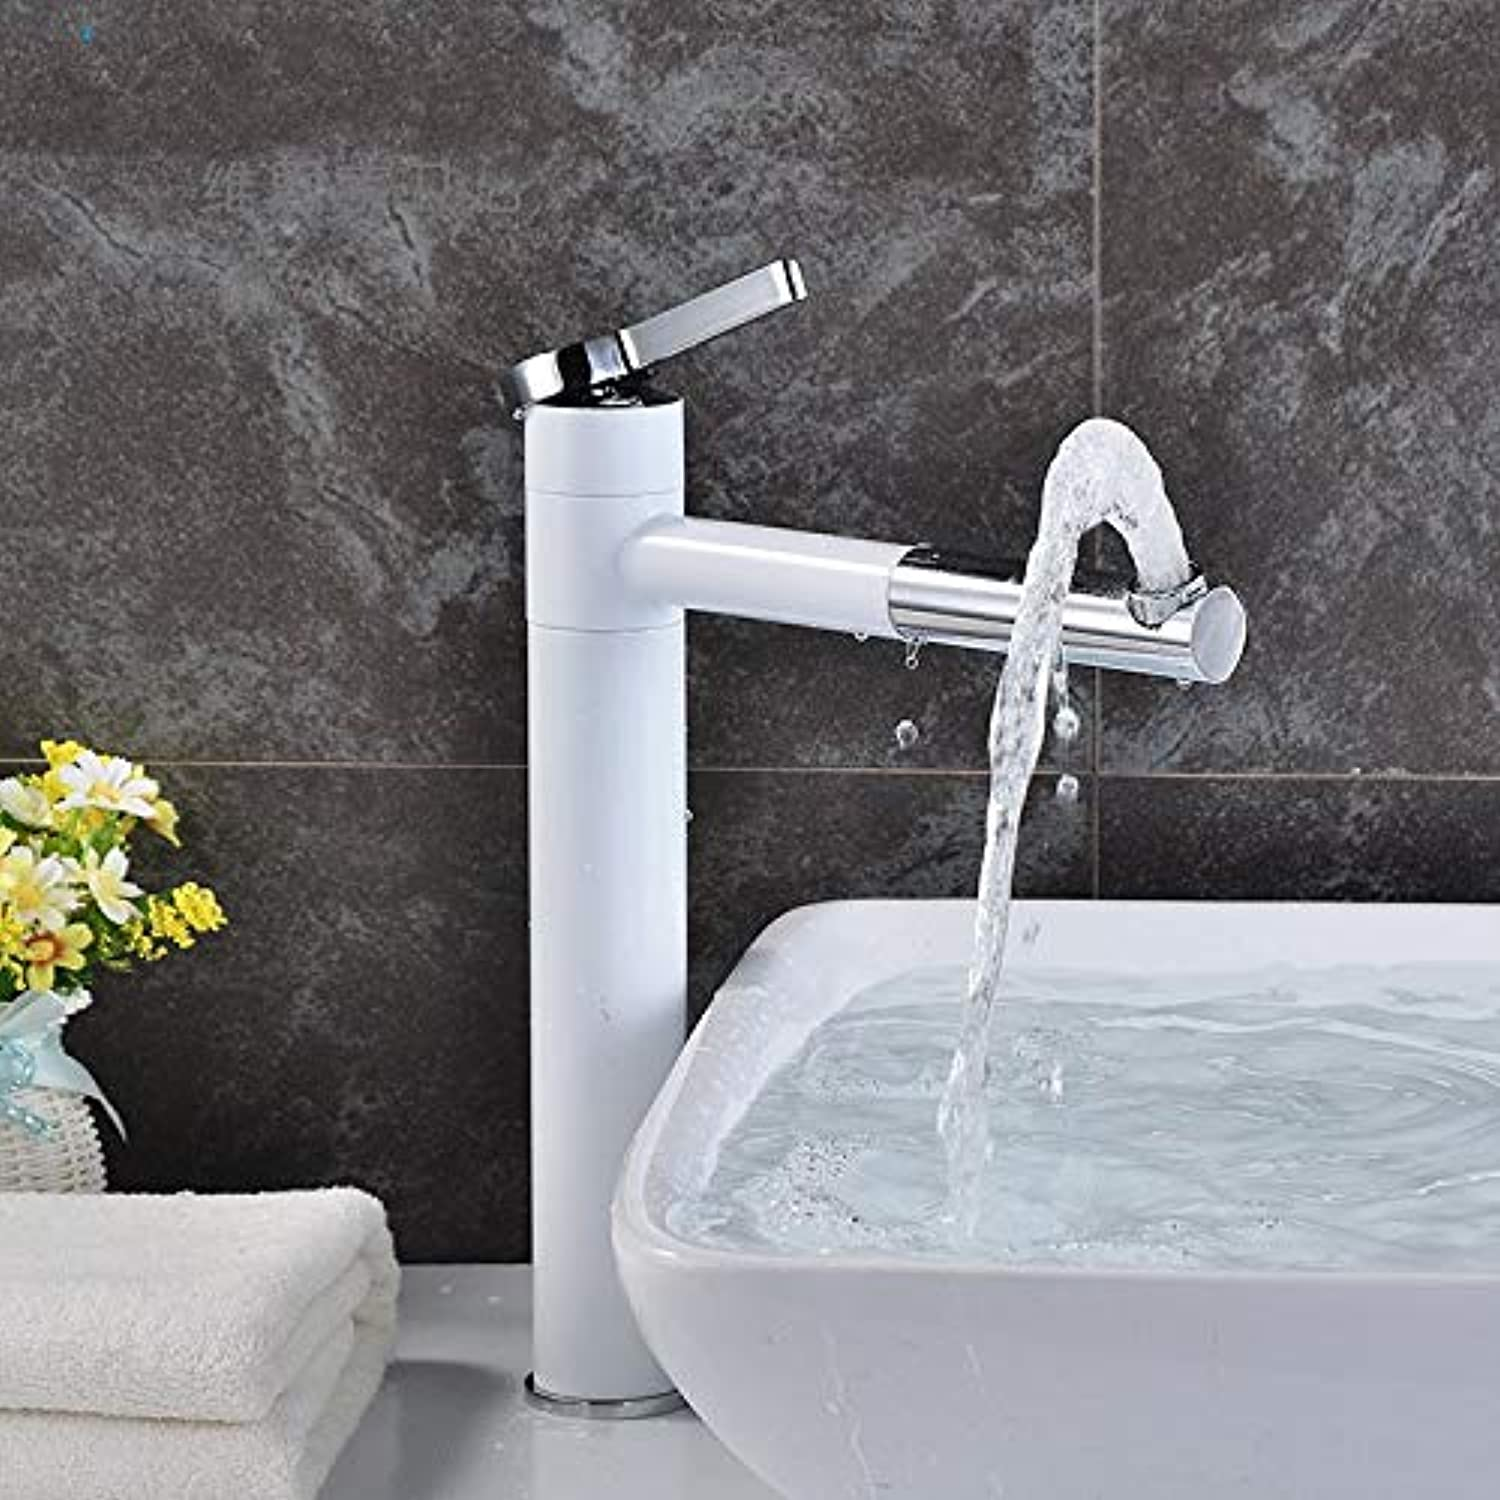 redOOY Taps Faucet Basin Faucet Bathroom Toilet Faucet Hot And Cold High Single Hole Basin Copper redating Bathroom Basin Faucet White